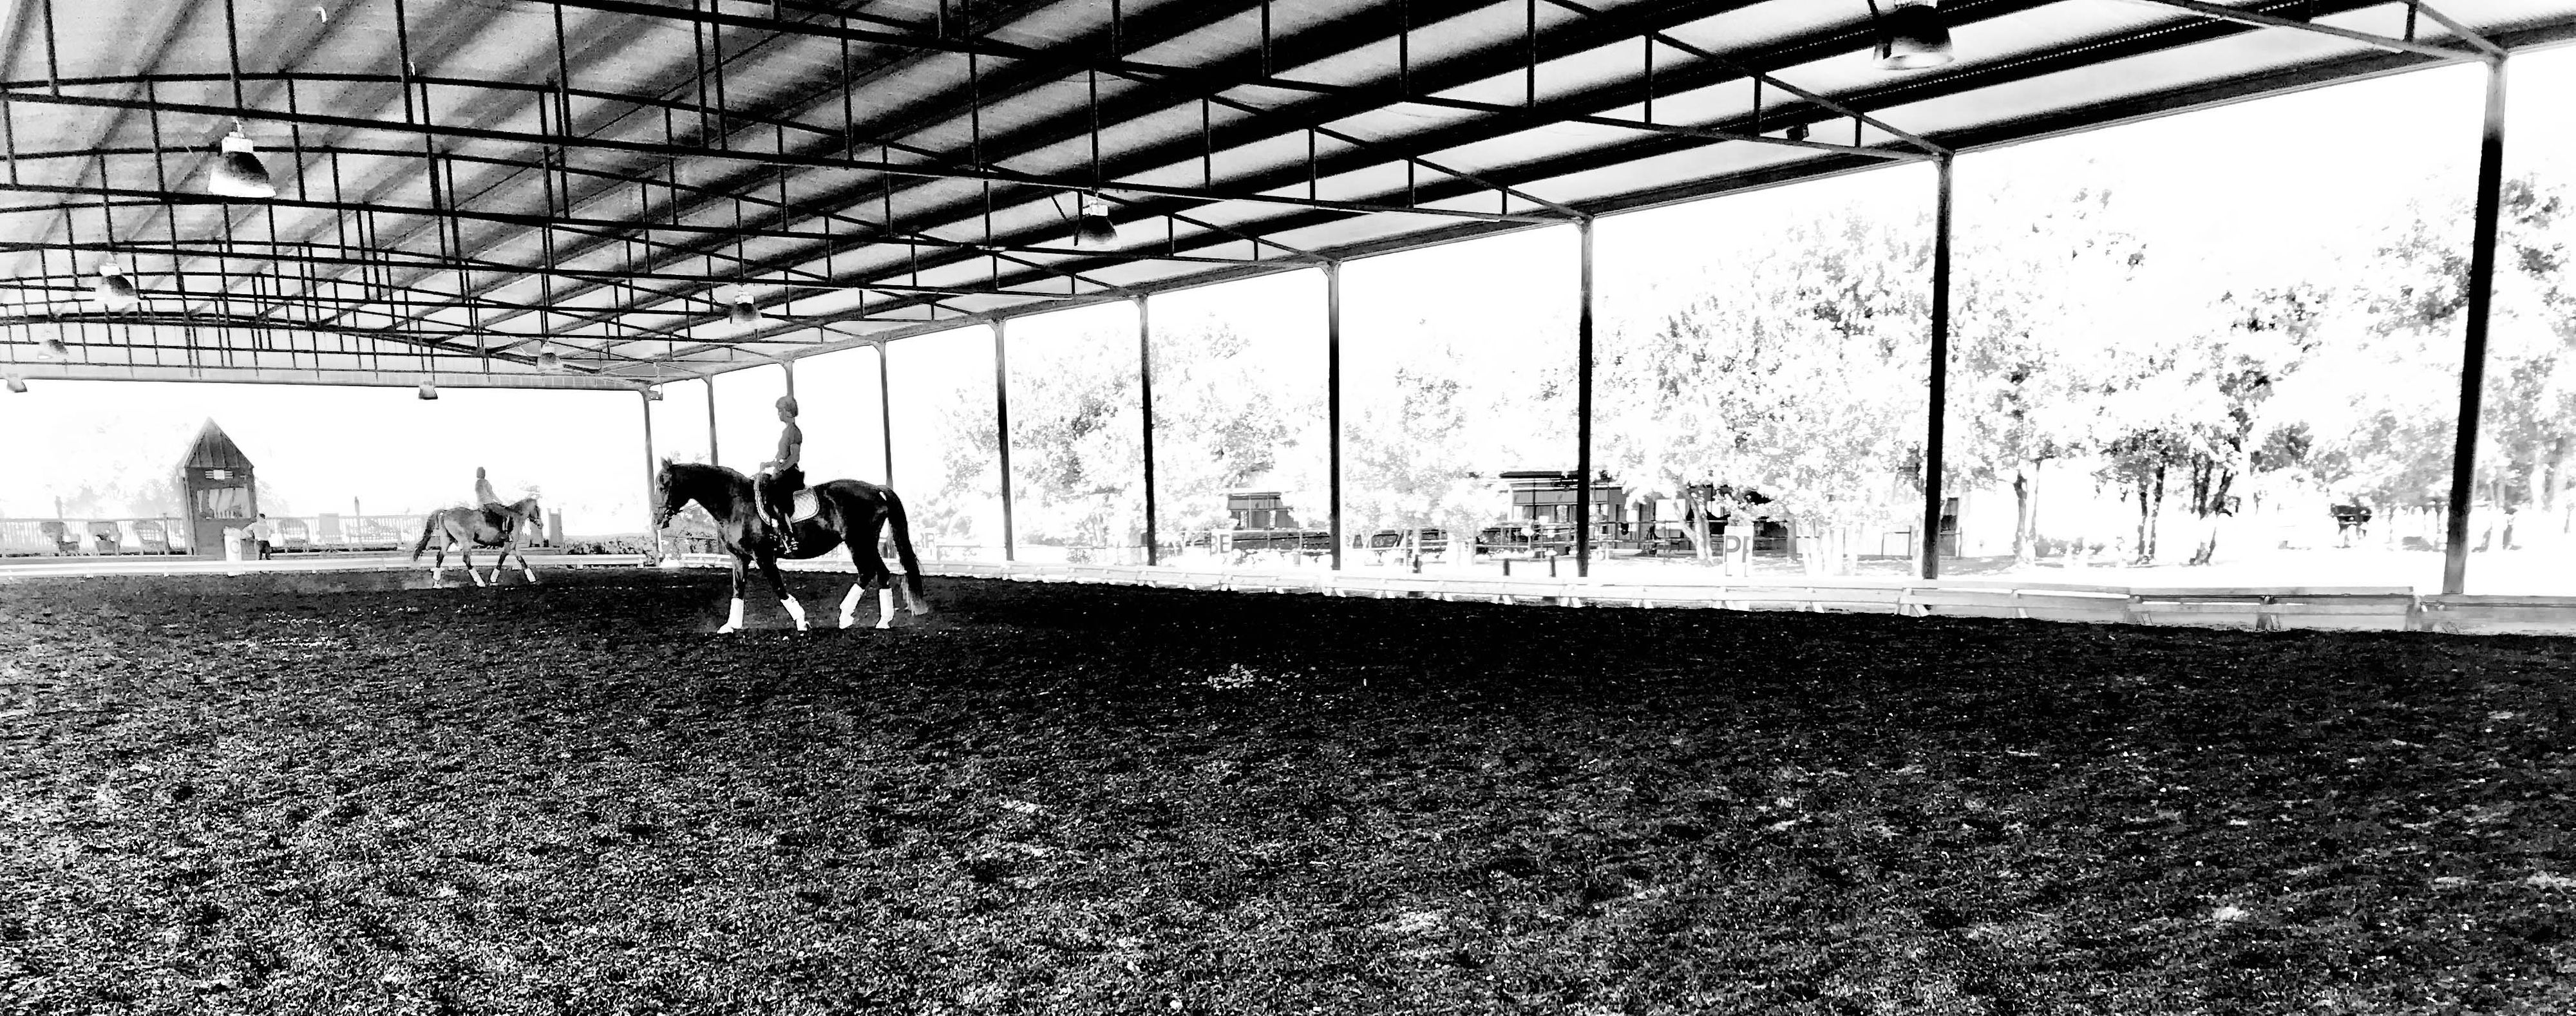 White Fences Equestrian Center